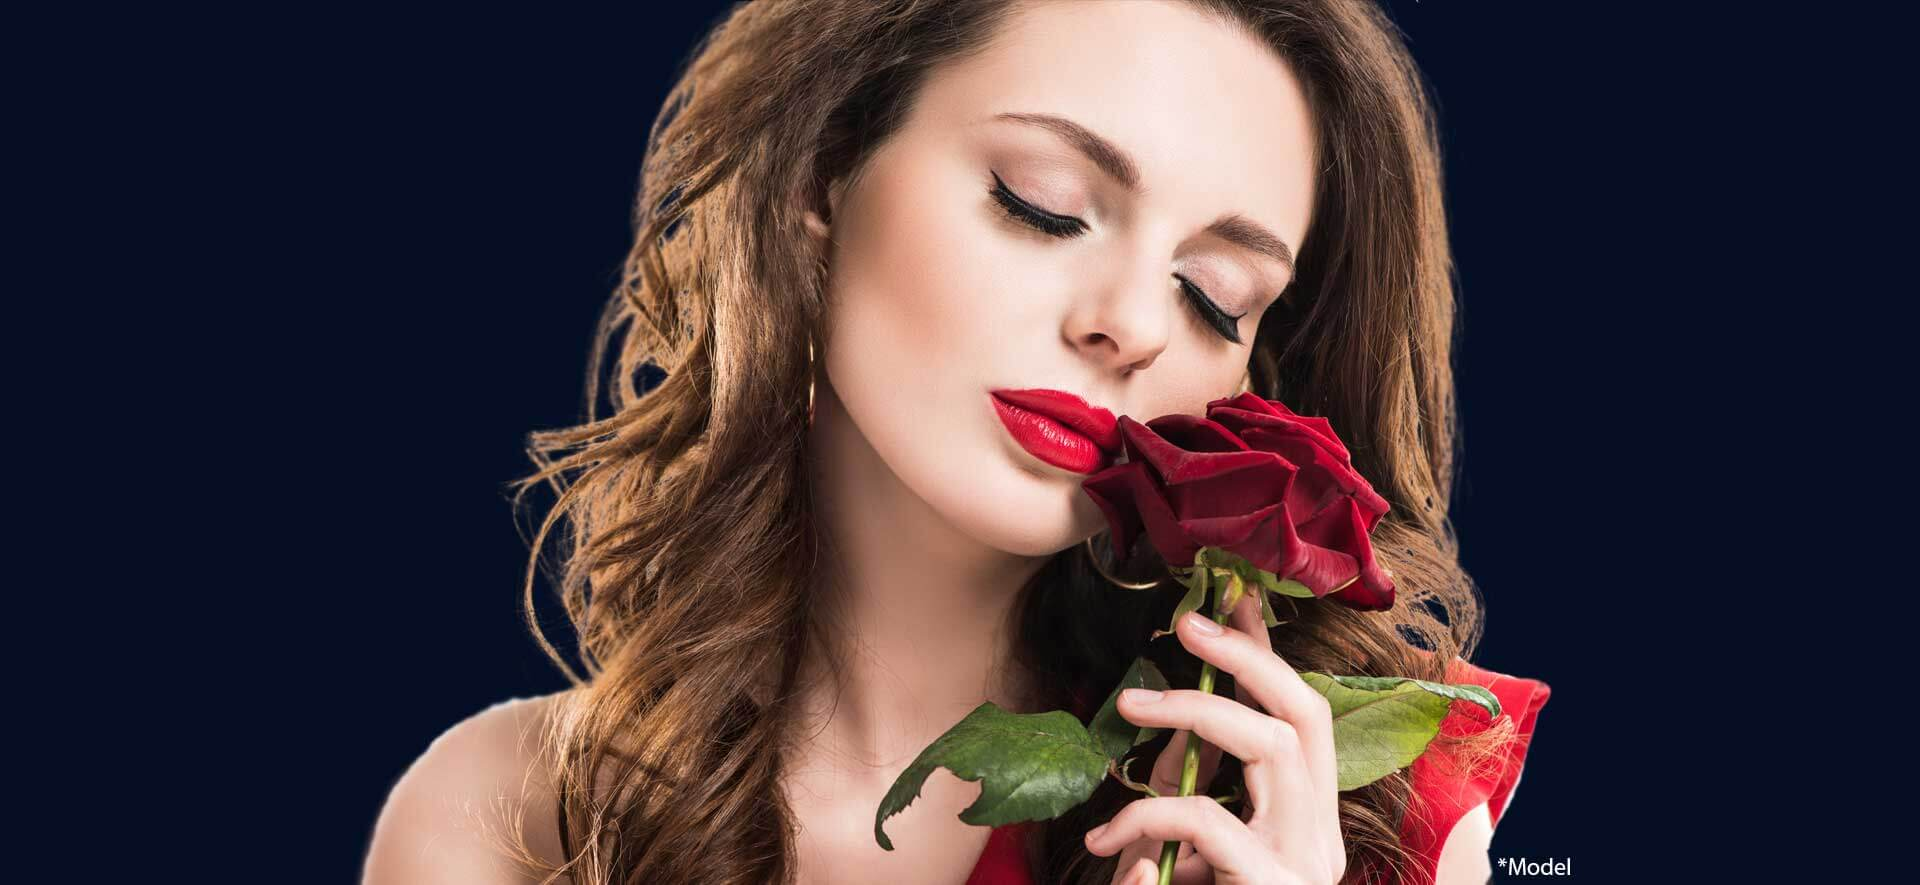 Stylish sensual girl touching face with rose isolated on dark background